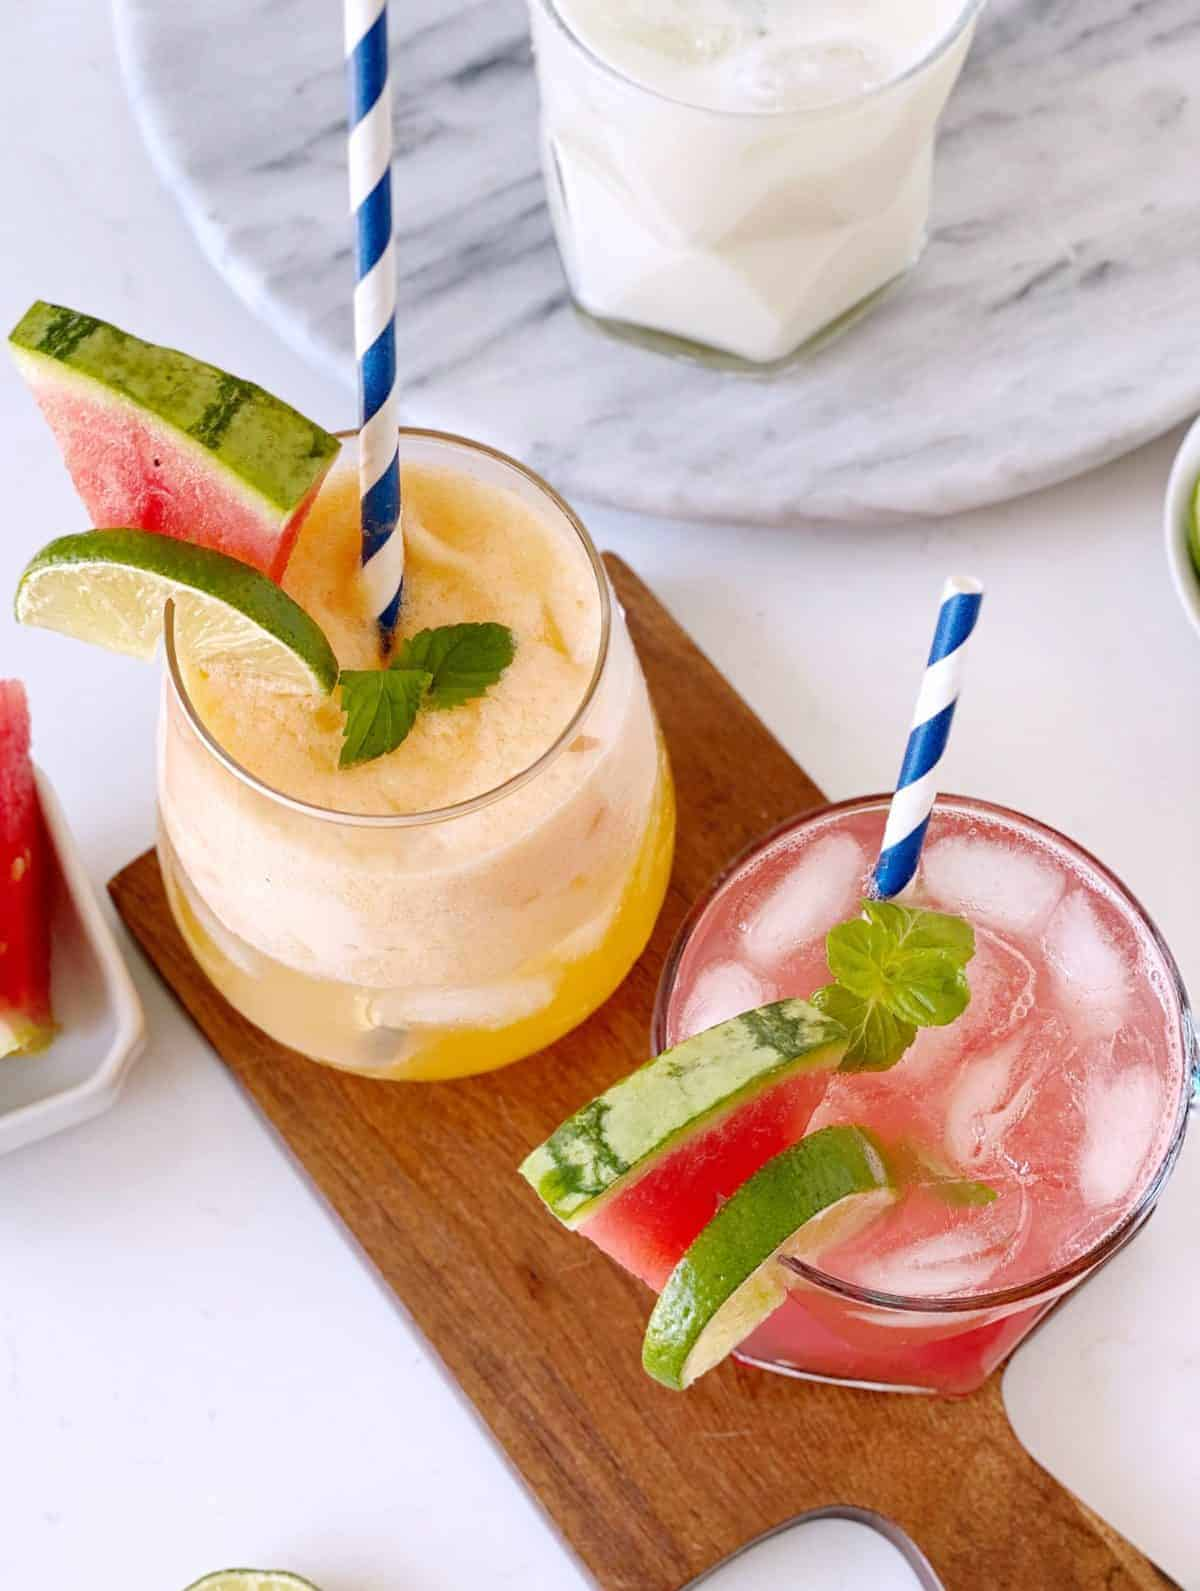 two fruit drinks with garnish ad straws on a wooden board, agua fresca recipe